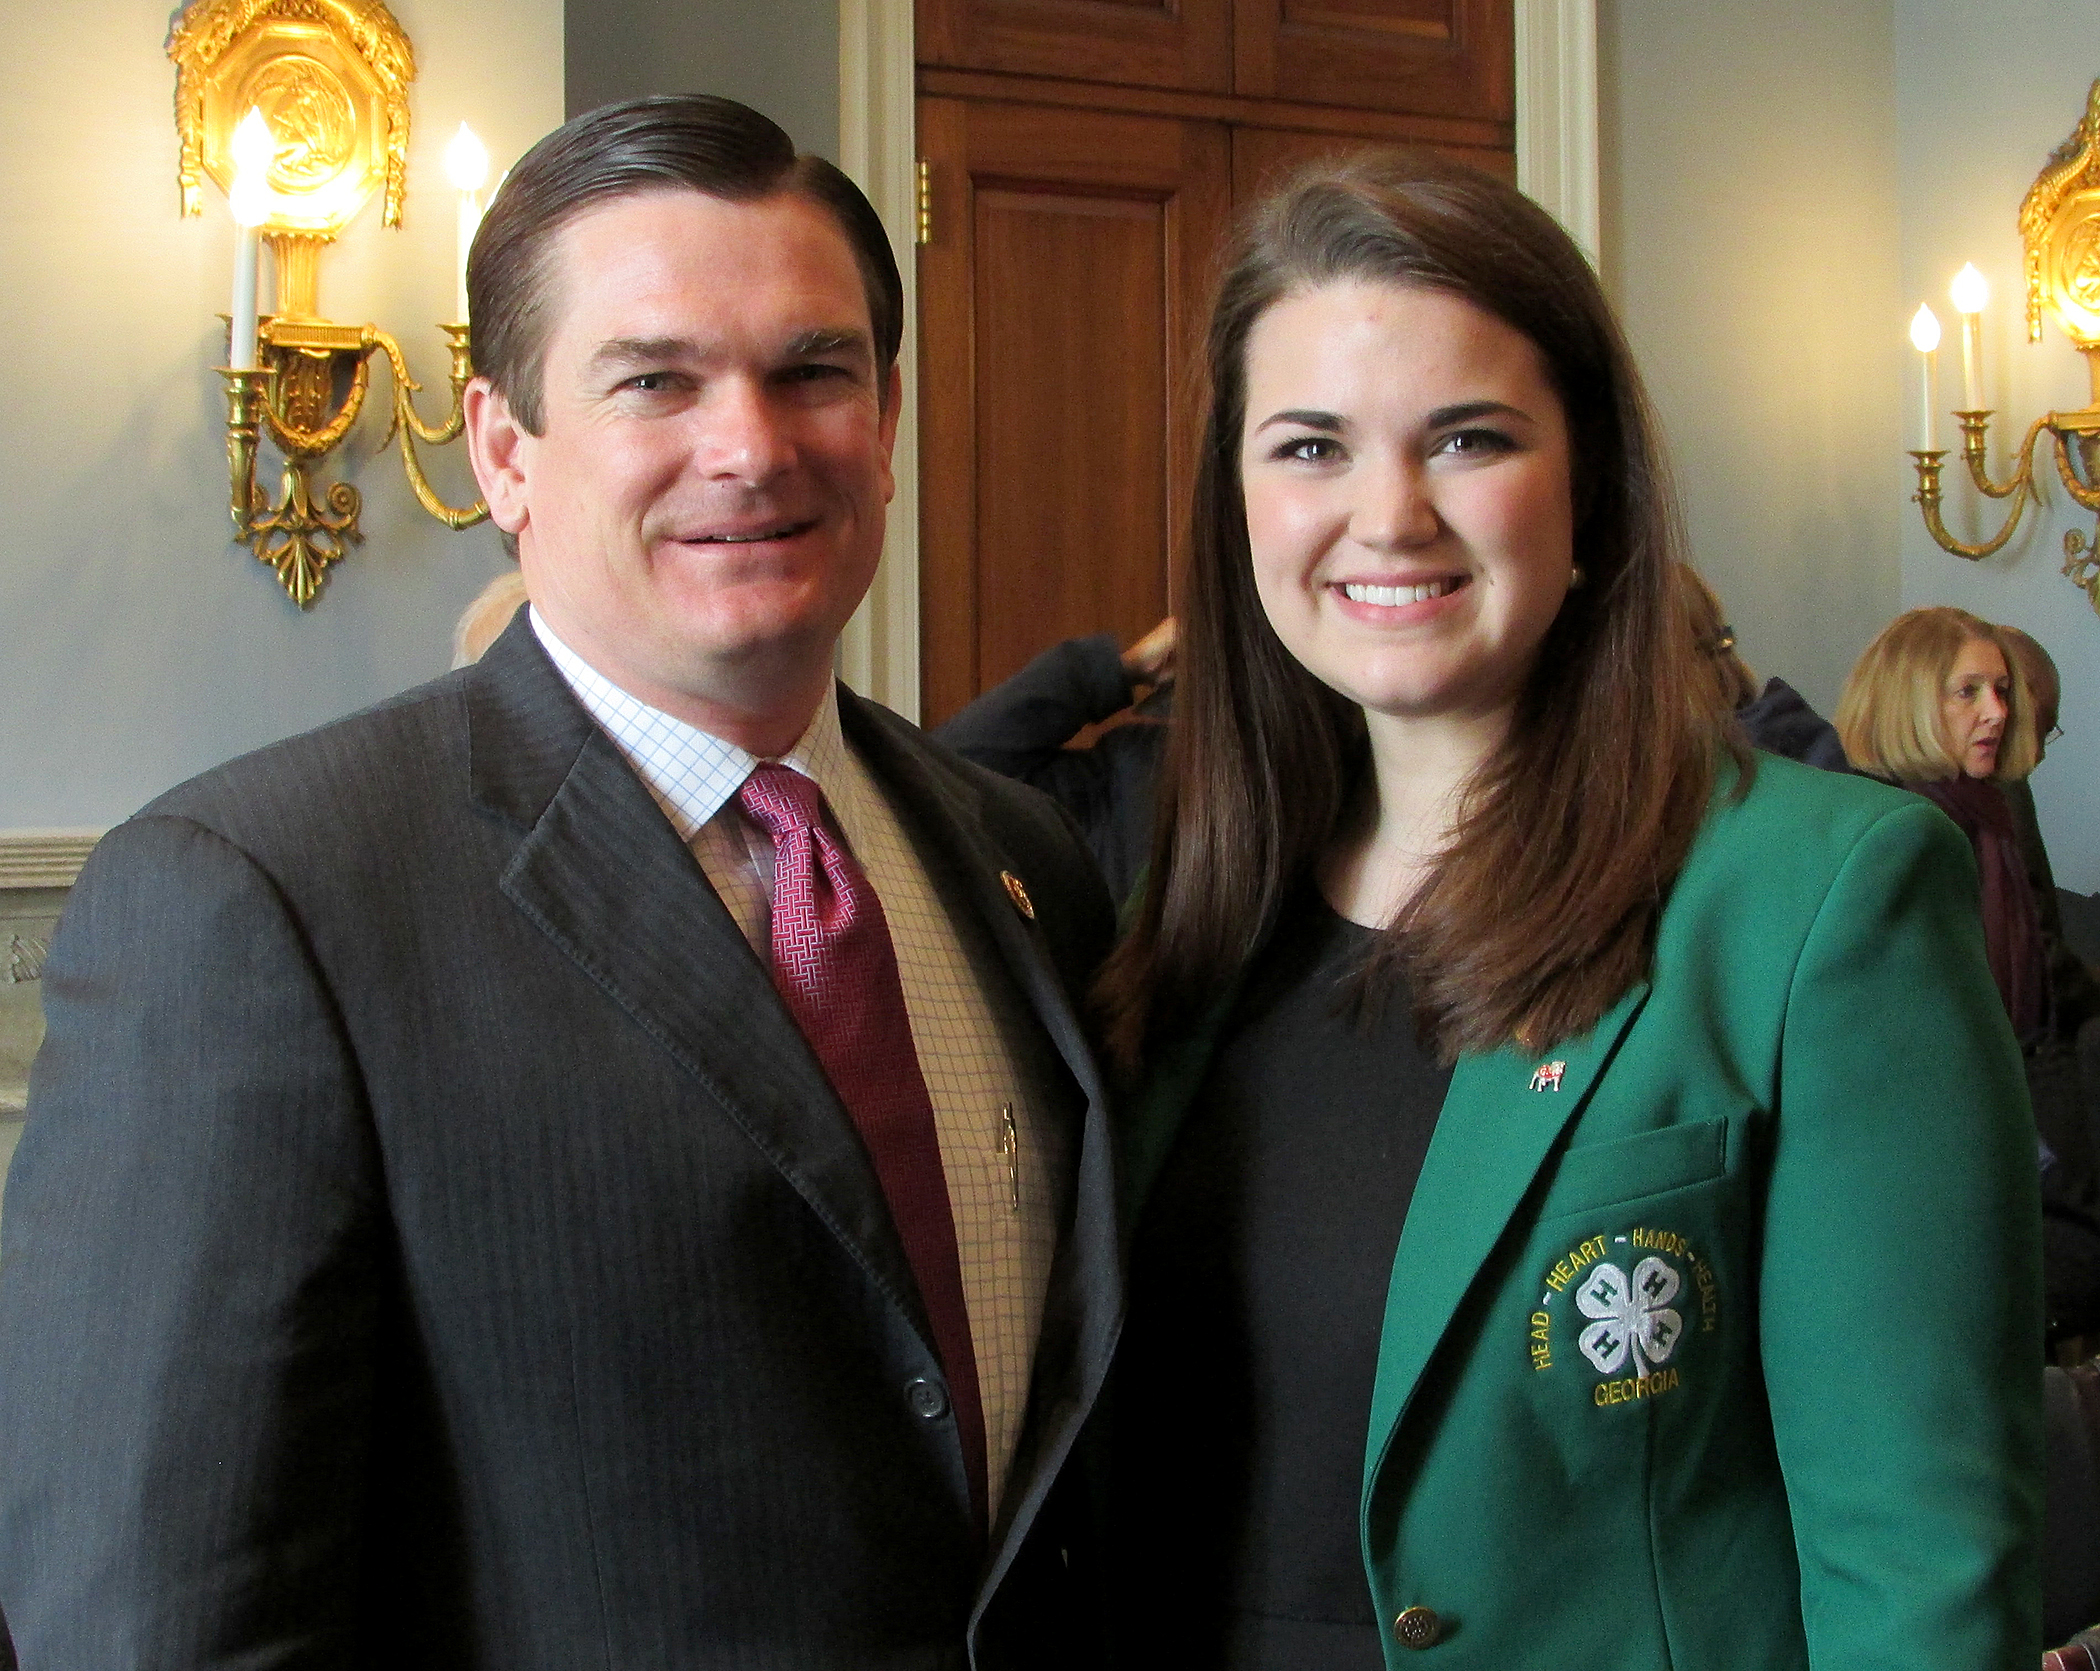 Tess Hammock, right, testified March 4 on behalf of the 7 million 4-H'ers in America. The hearing was held before the U.S. House of Representatives subcommittee on horticulture, research, biotechnology and foreign agriculture, chaired by Rep. Austin Scott (R-Ga.), left.